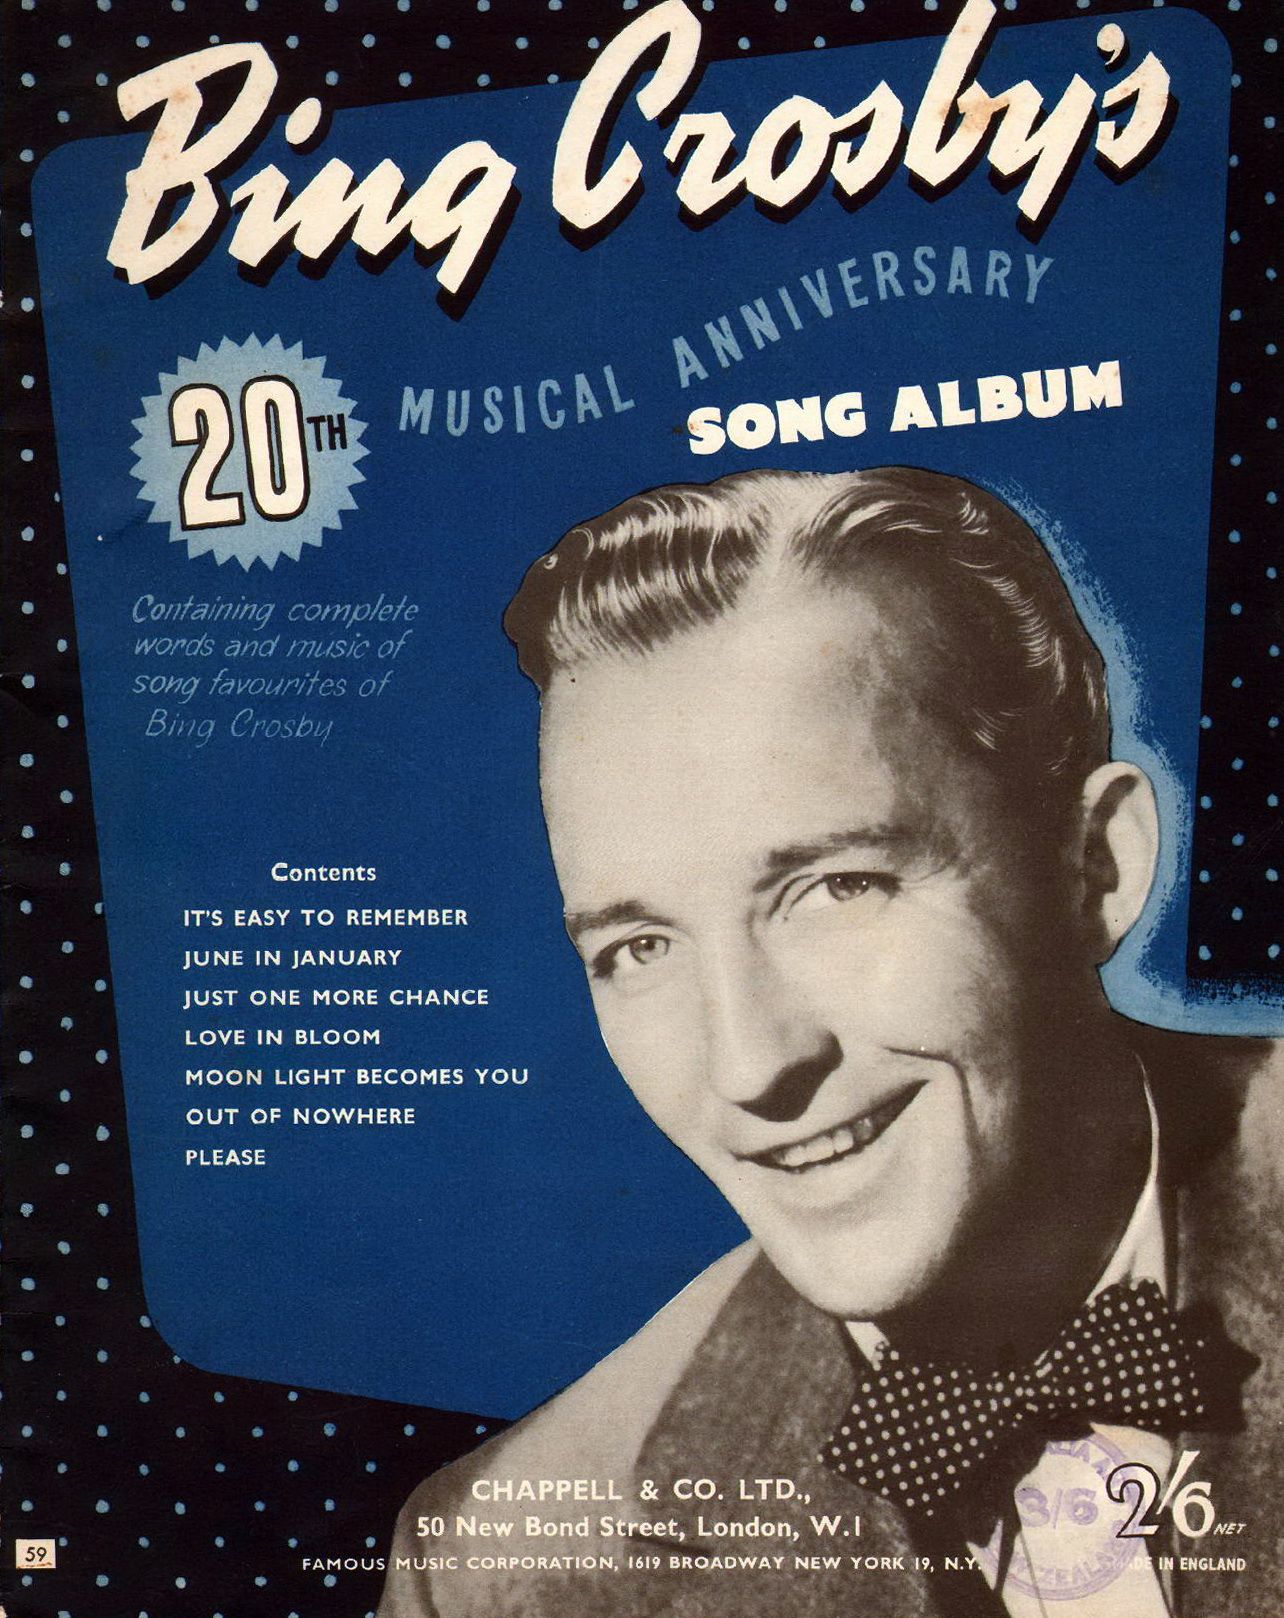 bing crosby s 20th musical anniversary song album 1954 a collection of seven popular songs